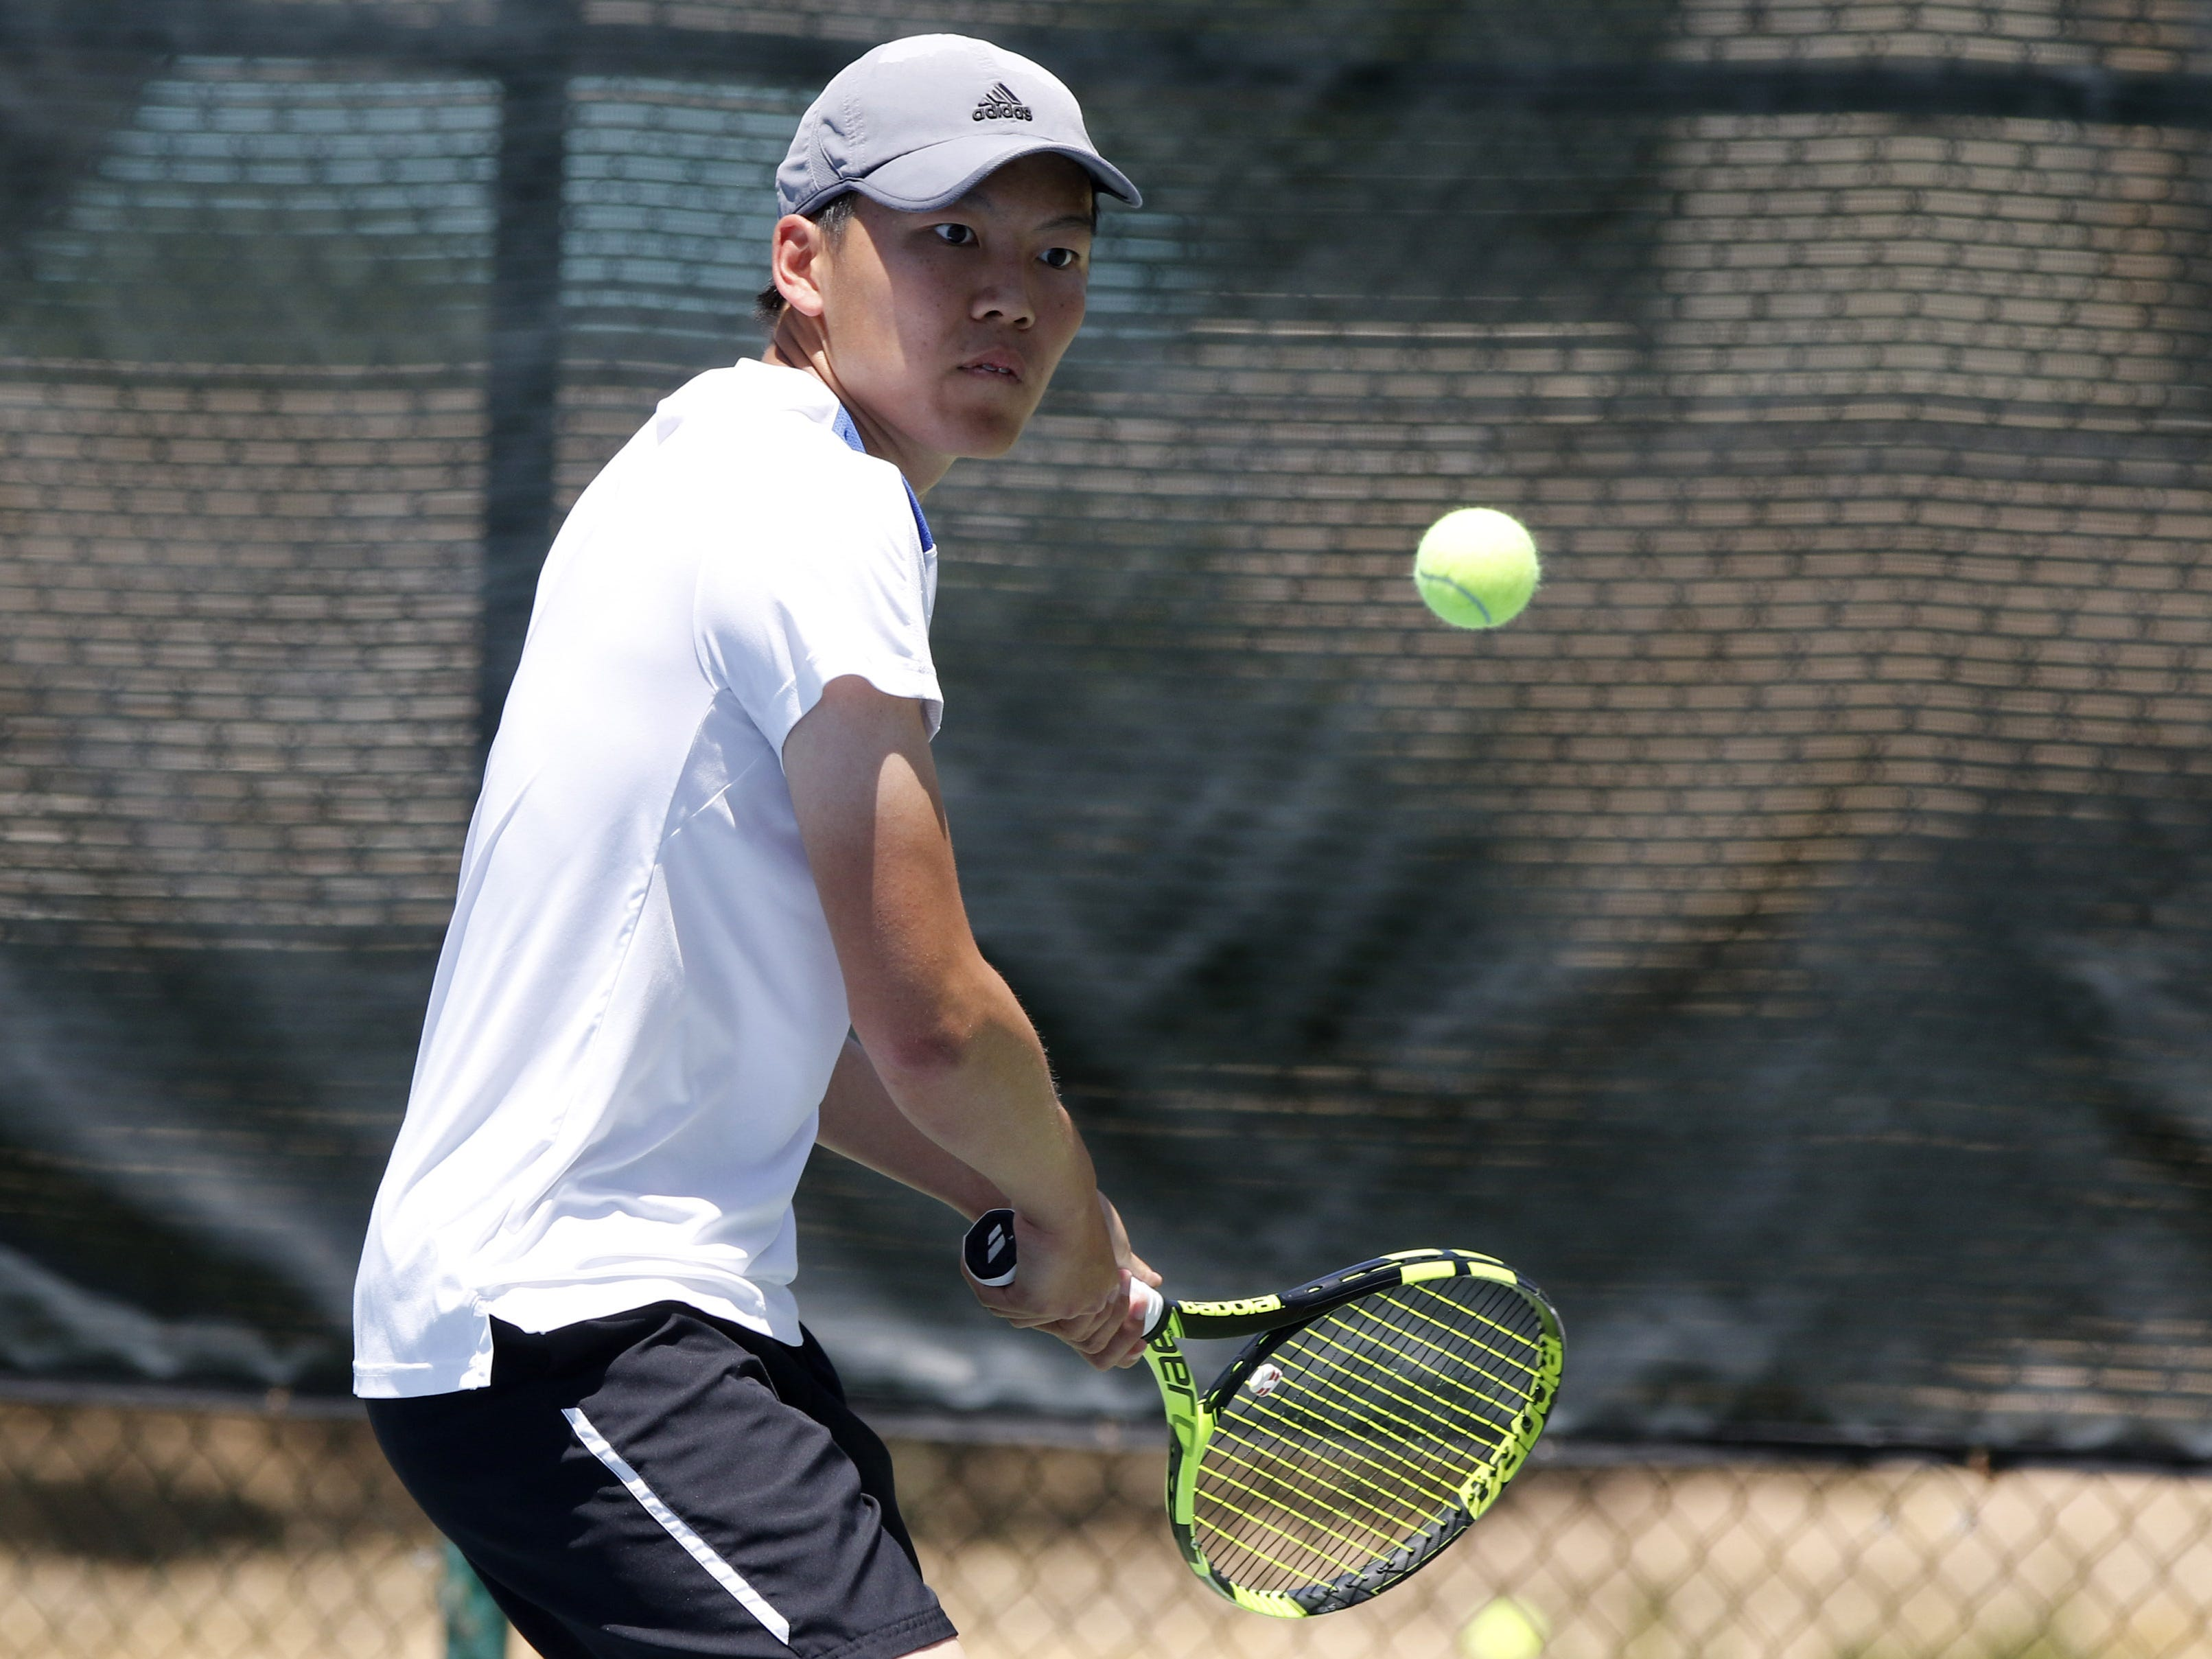 Phoenix Country Day's Alex Tam returns a shot against Scottsdale Prep's Aidan Bossone during the Division III tennis team state championship in Glendale, Arizona, May 04, 2019.